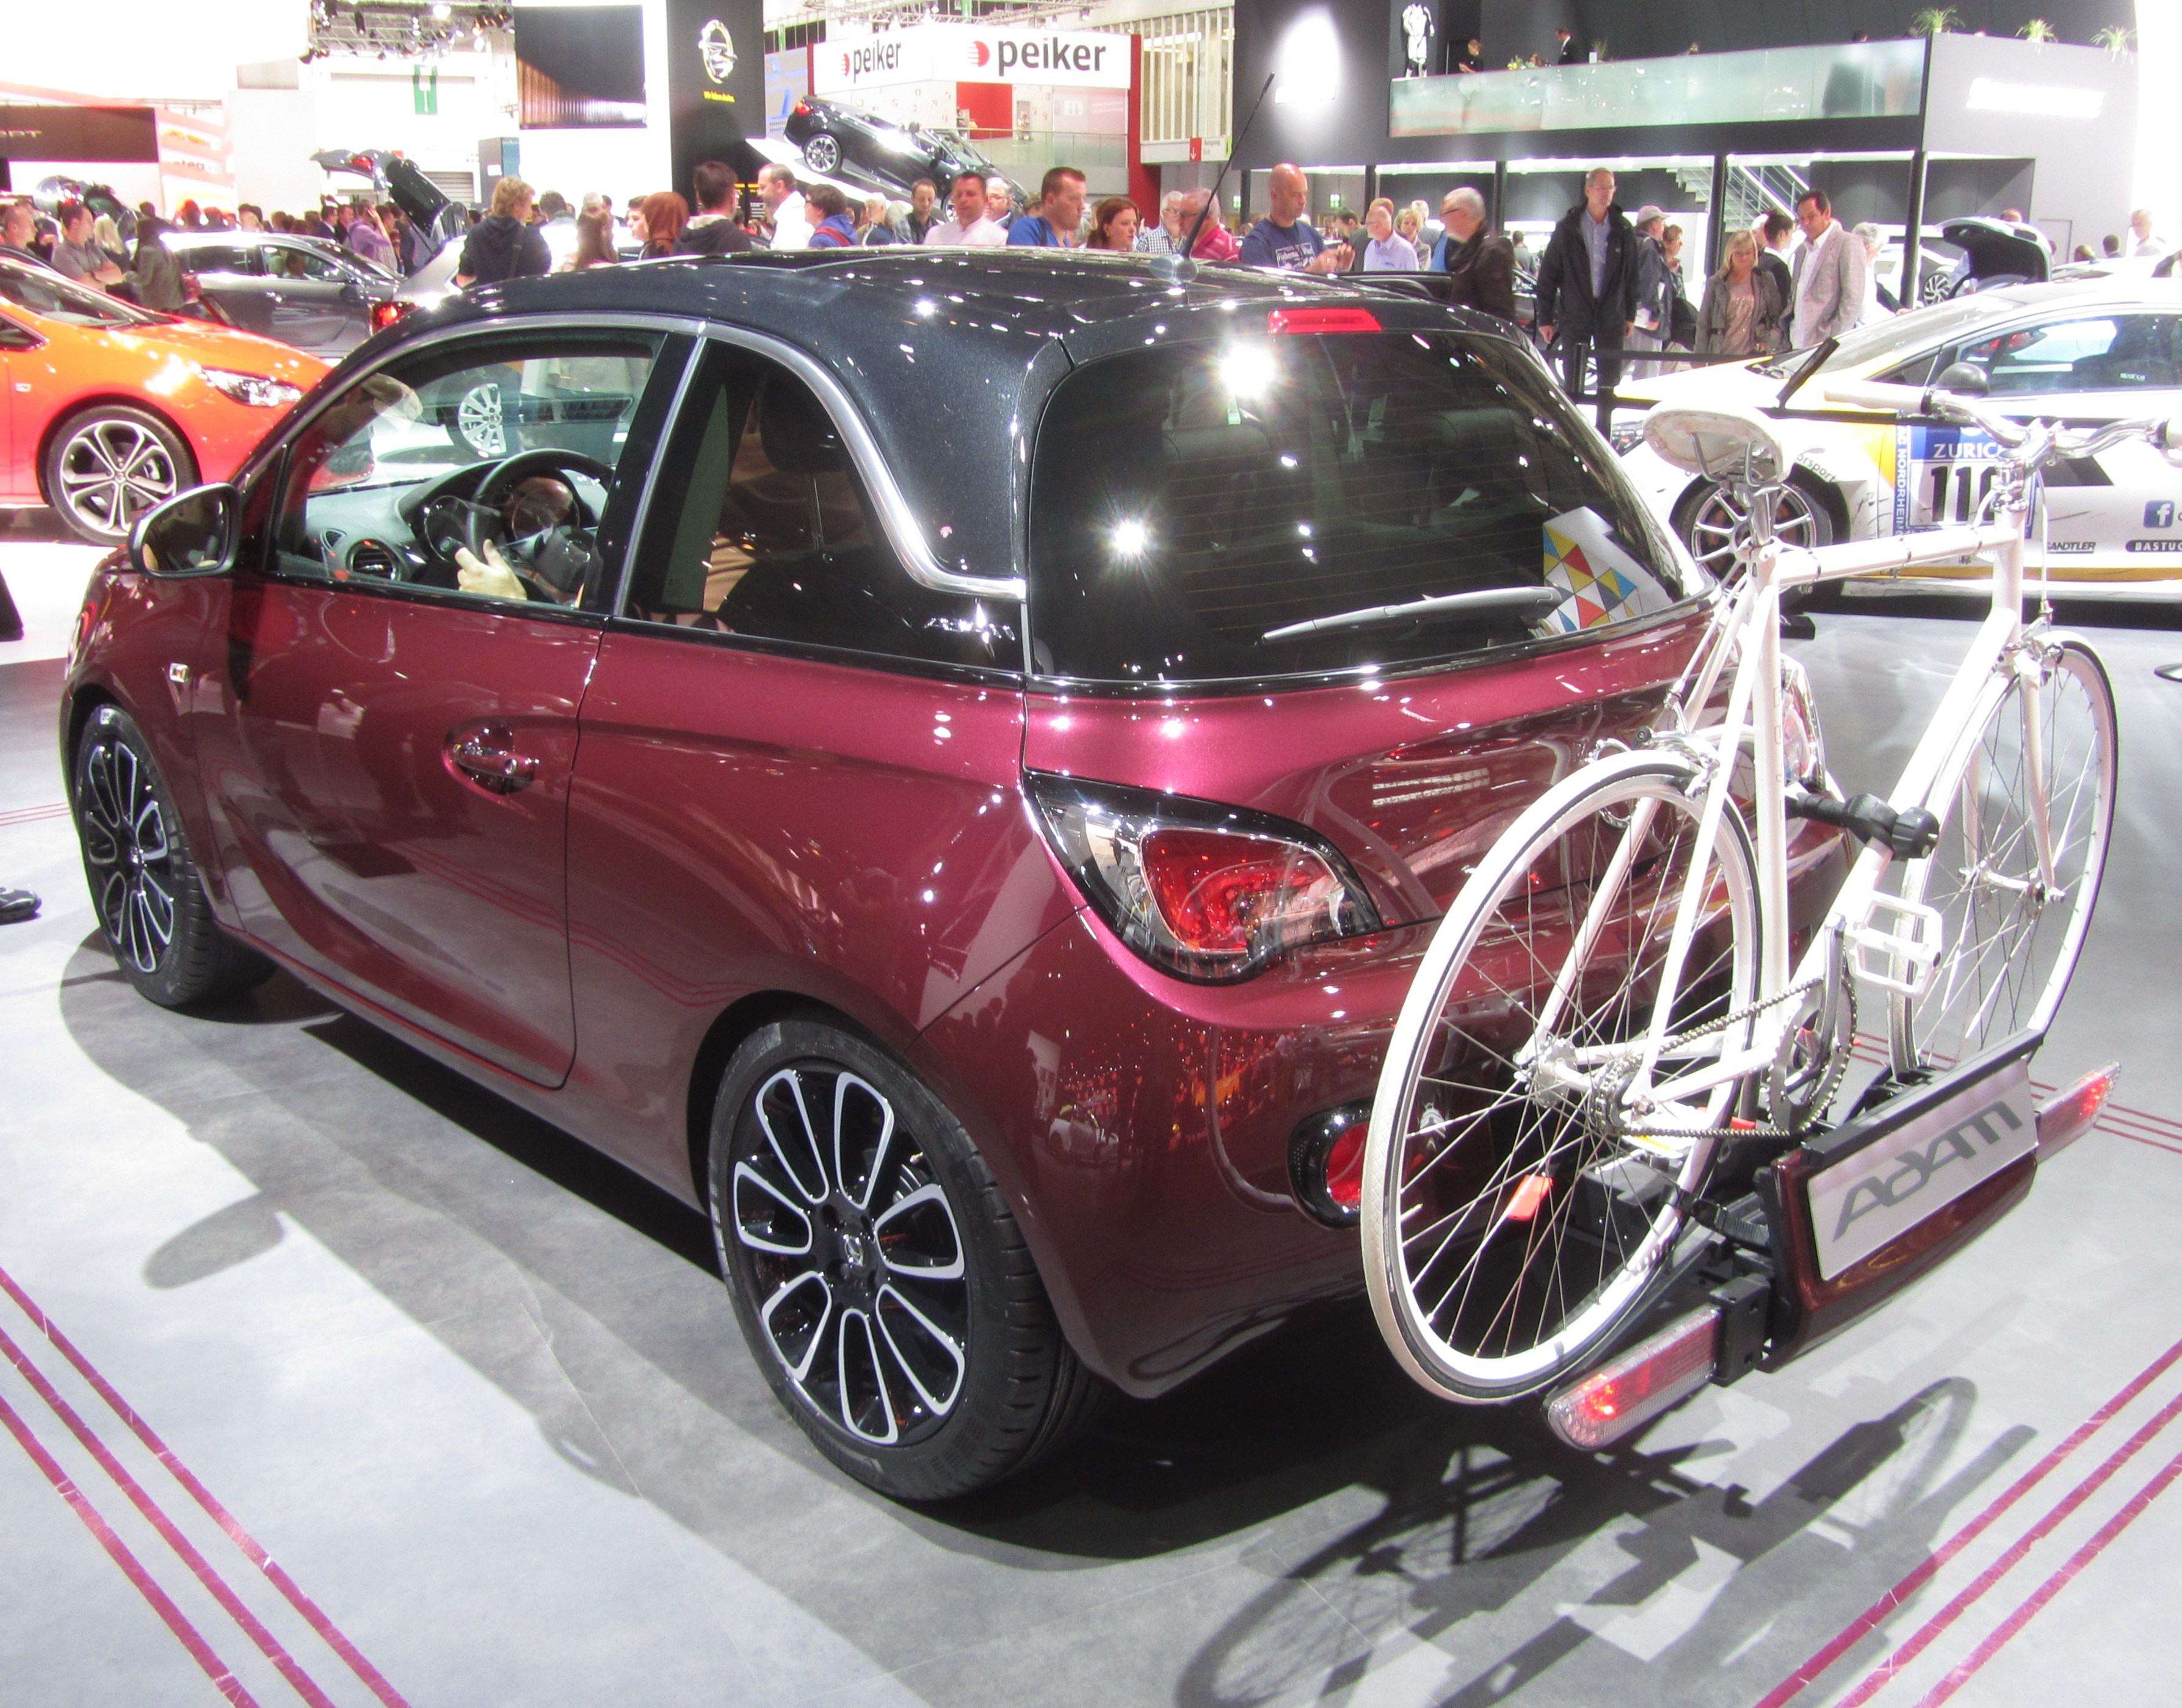 datei opel adam berry red w flexfix bike carrier iaa2013. Black Bedroom Furniture Sets. Home Design Ideas